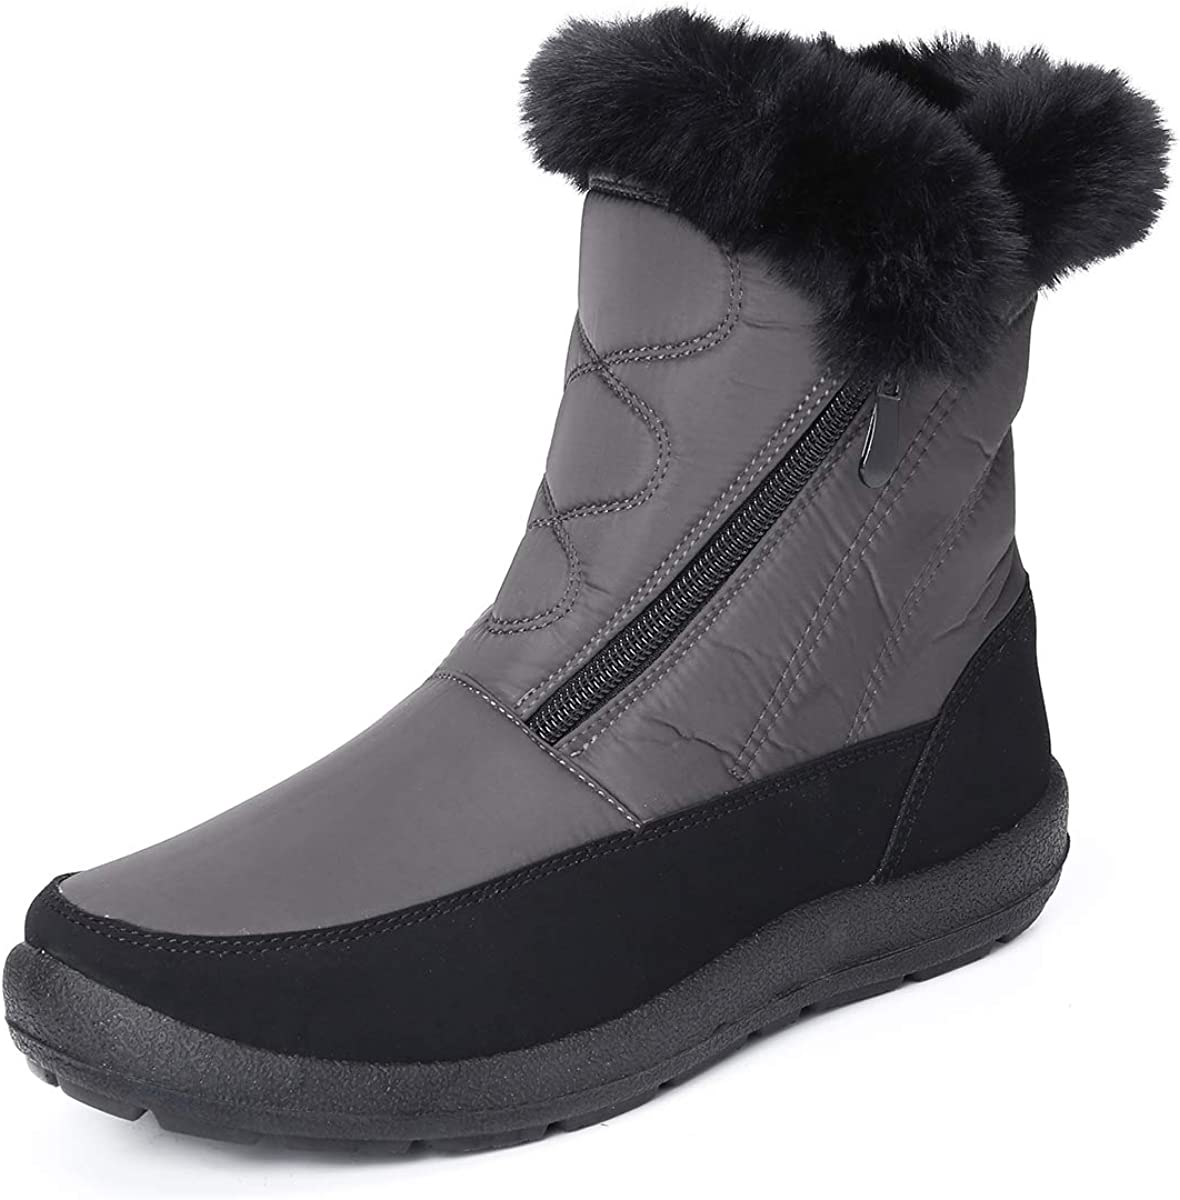 gracosy Snow Boots for Women, Warm Ankle Boots Waterproof Outdoor Slip On Fur Lined Winter Short Booties Anti-Slip Comfort Zipper Large Size Shoes